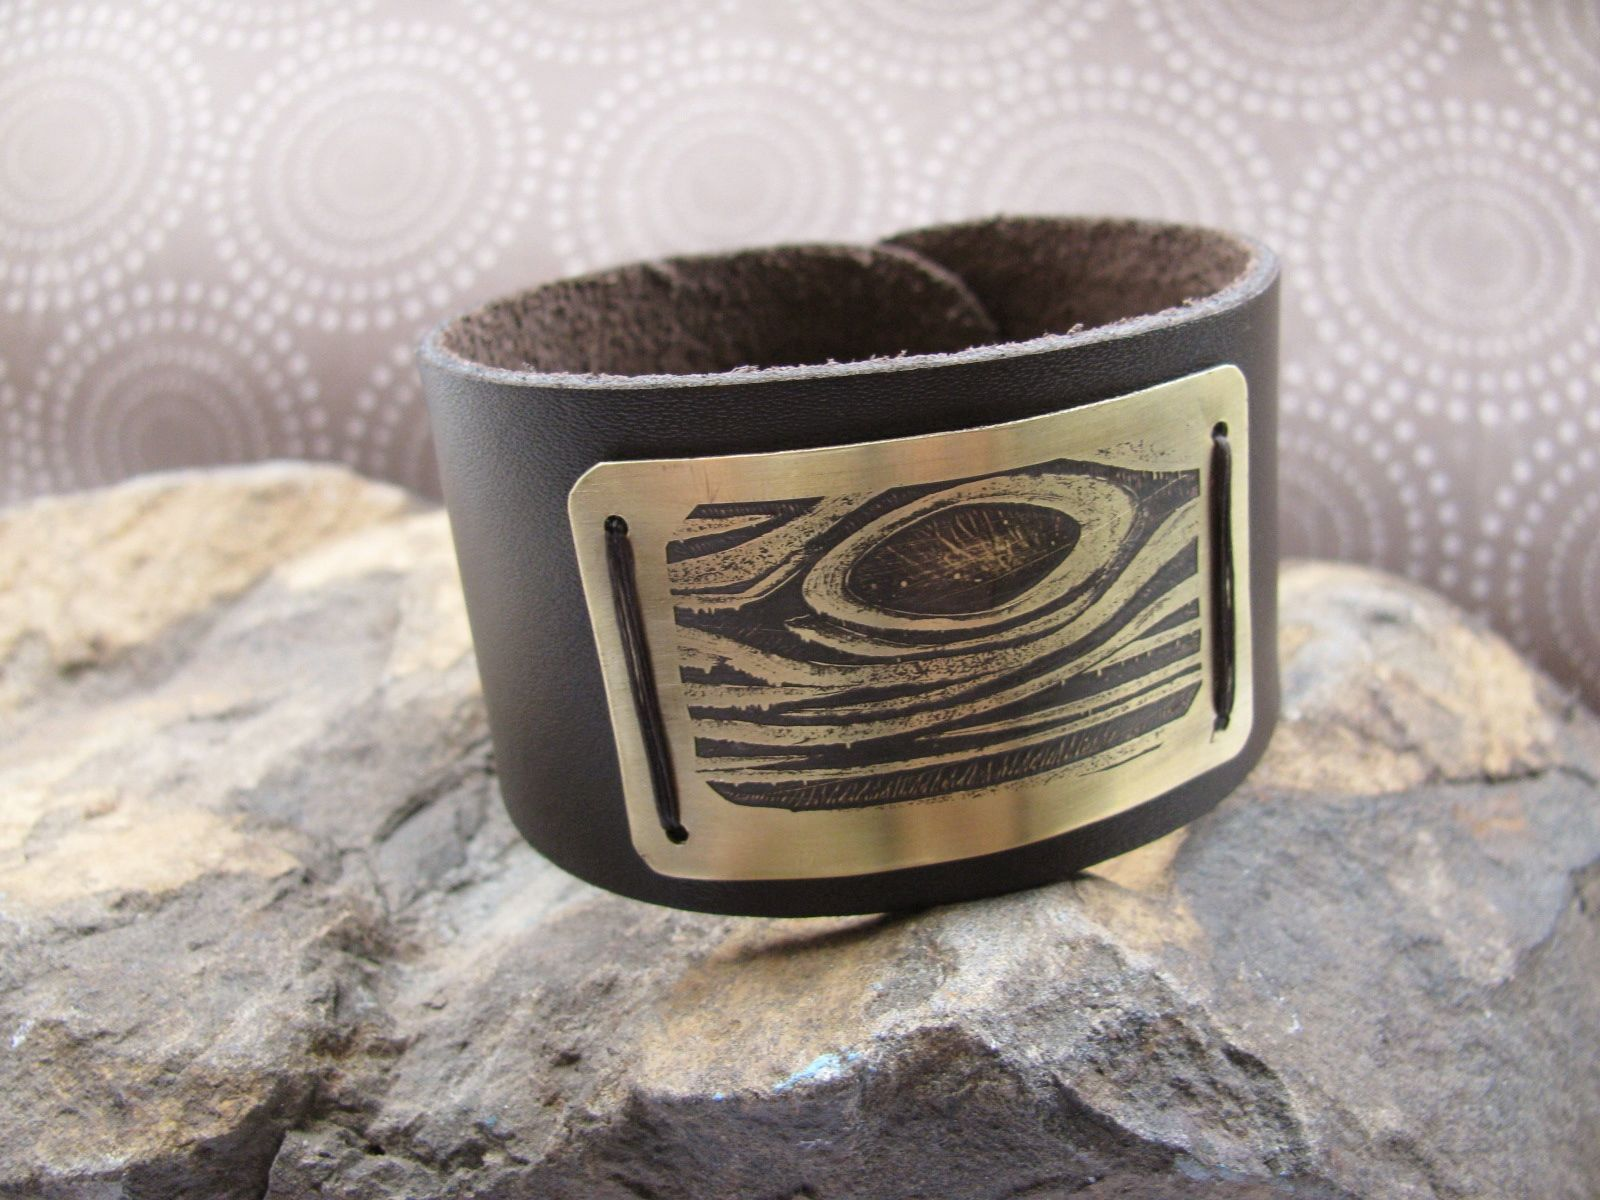 The Man Cuff: How to make a Manly Etched Metal and Leather Cuff